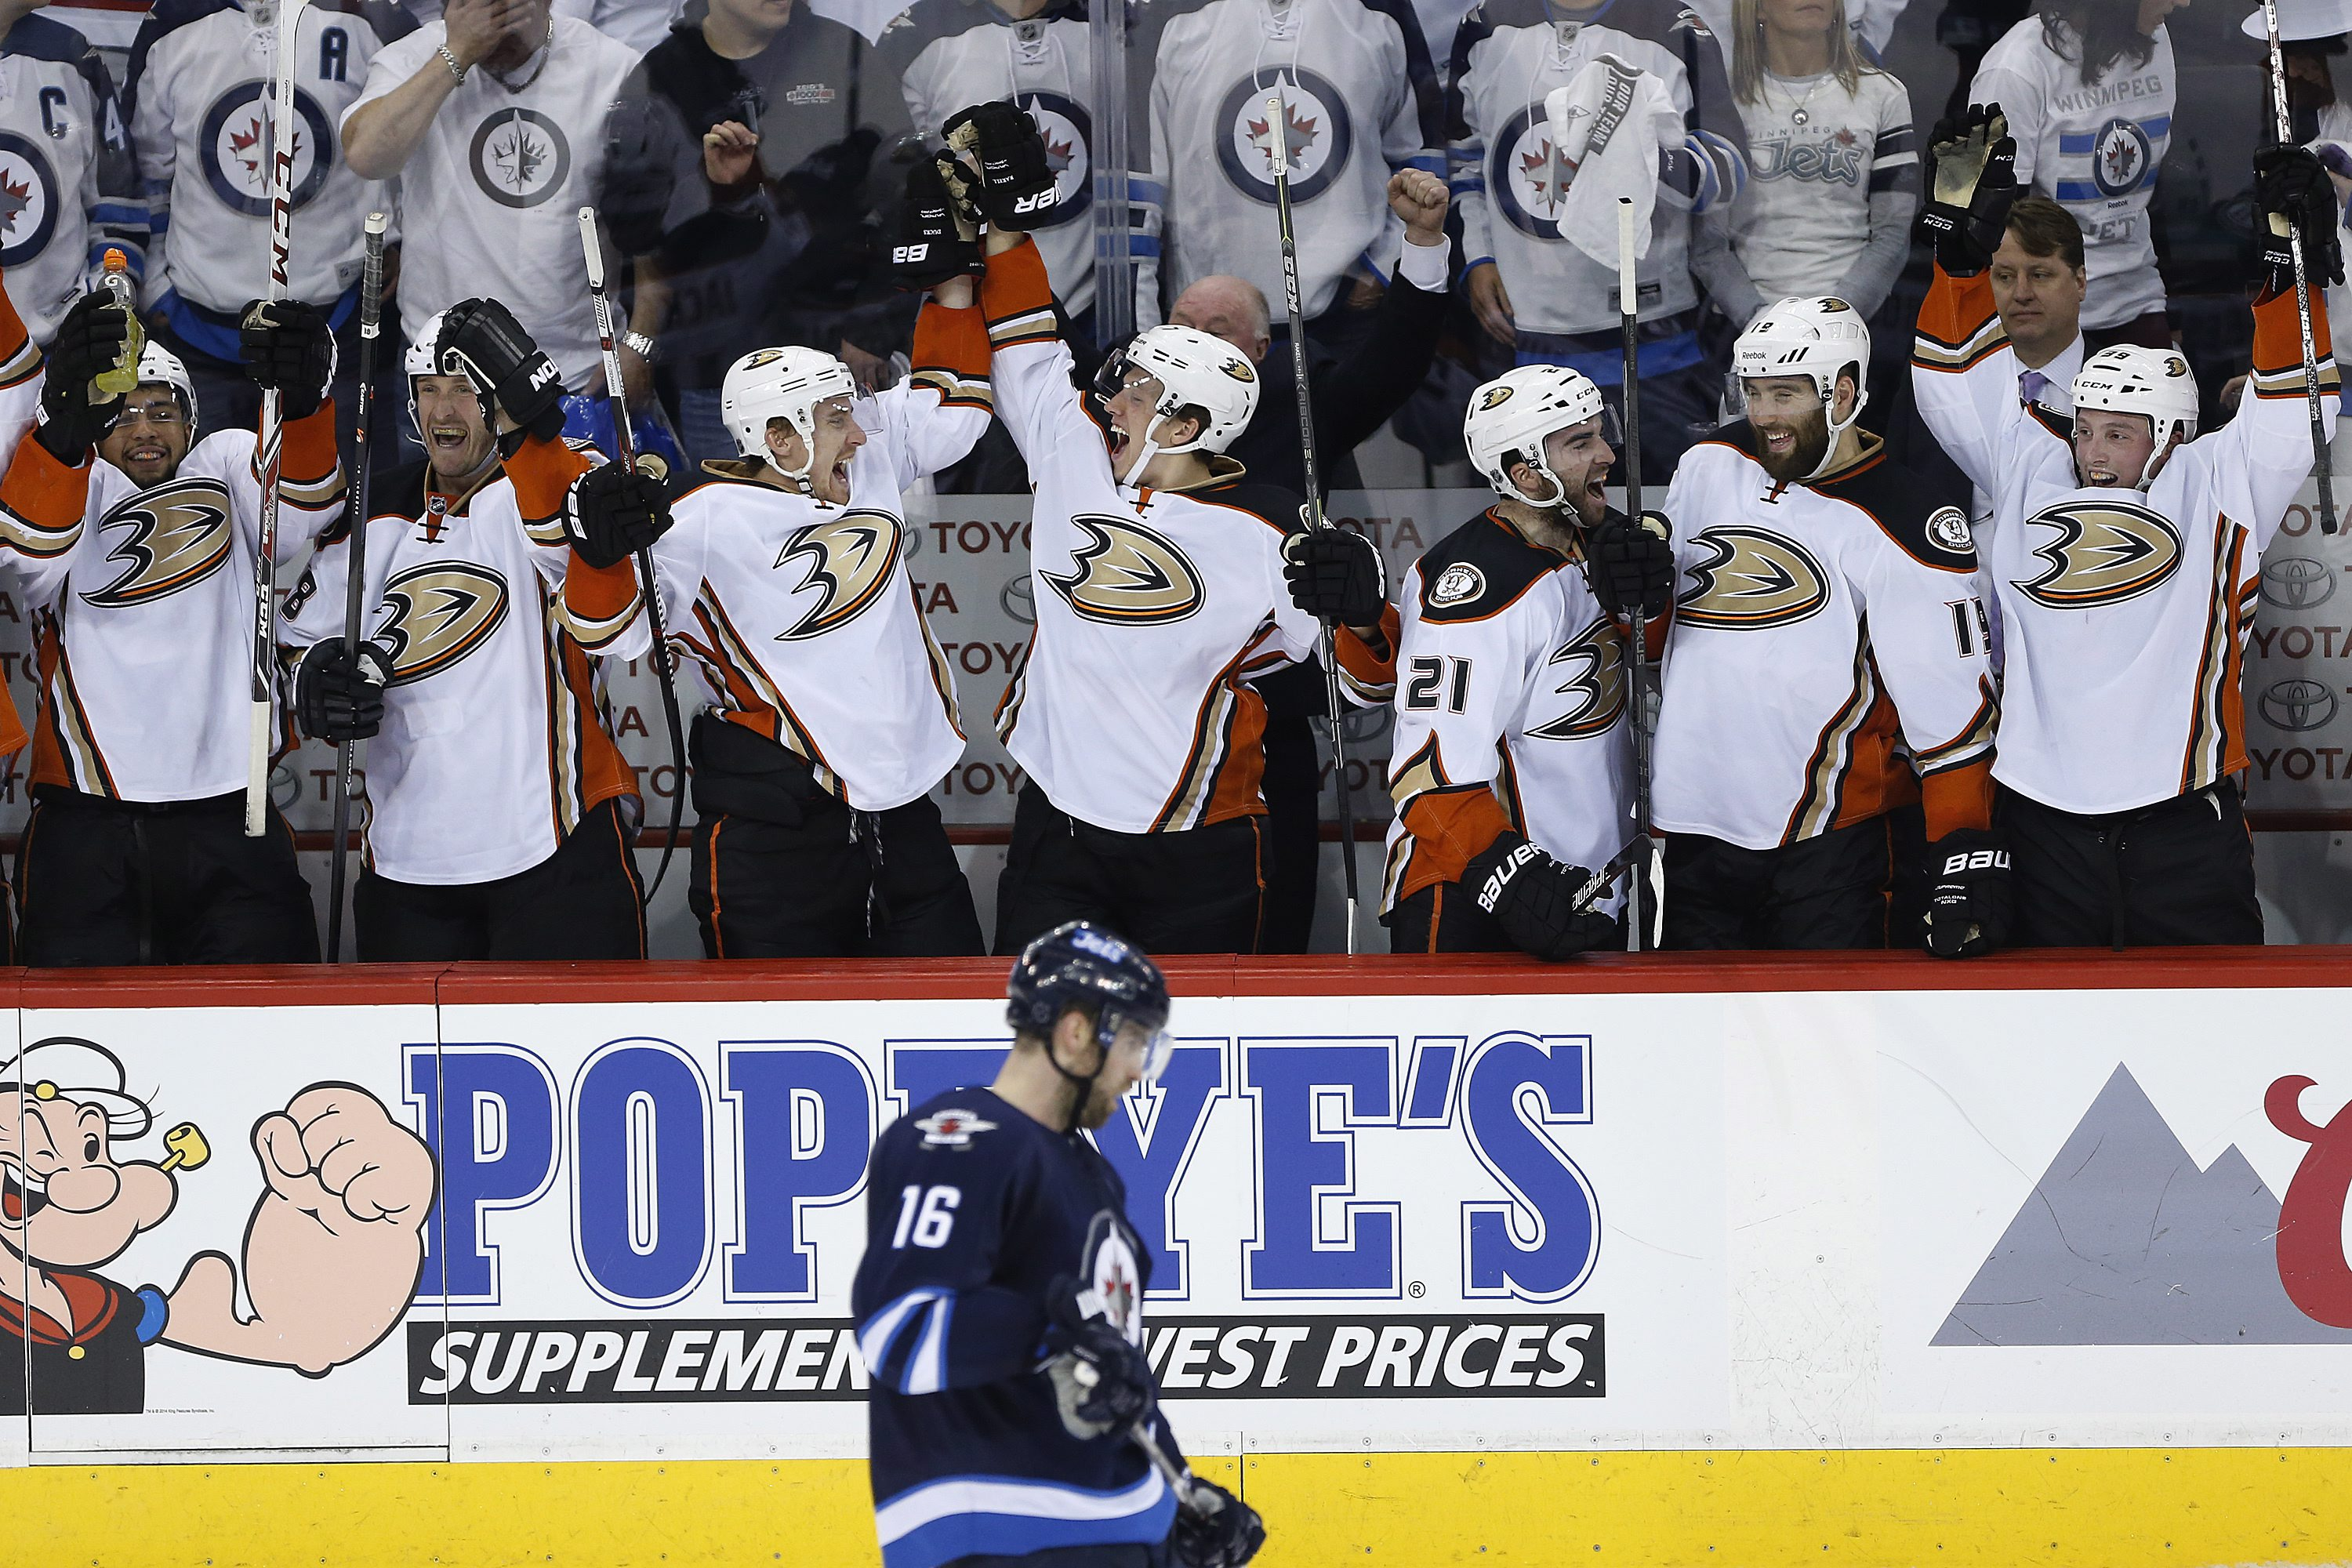 The Anaheim Ducks celebrate a goal against the Winnipeg Jets as Jets' Andrew Ladd (16) skates past during the third period of Game 4 of a first-round NHL hockey playoff series, Wednesday, April 22, 2015, in Winnipeg, Manitoba. Anaheim won 5-2 and swept th